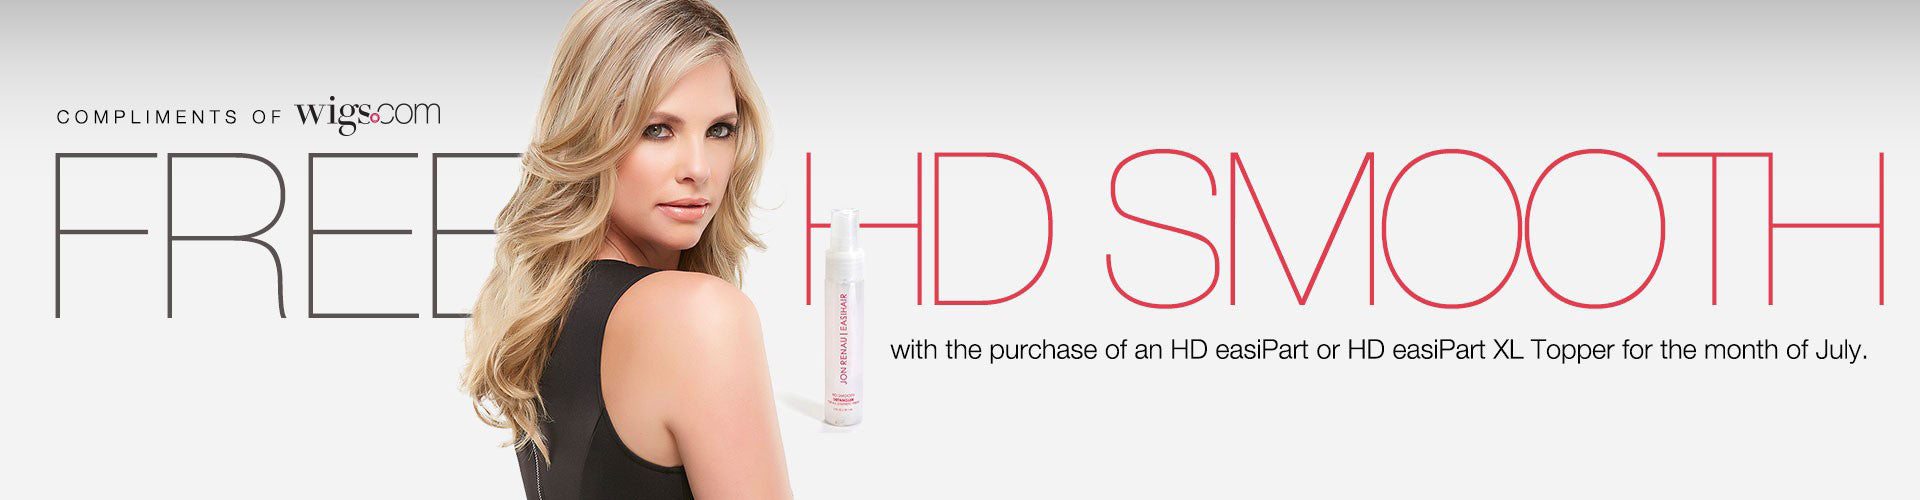 Get a FREE 2.0 oz HD Smooth with purchase!